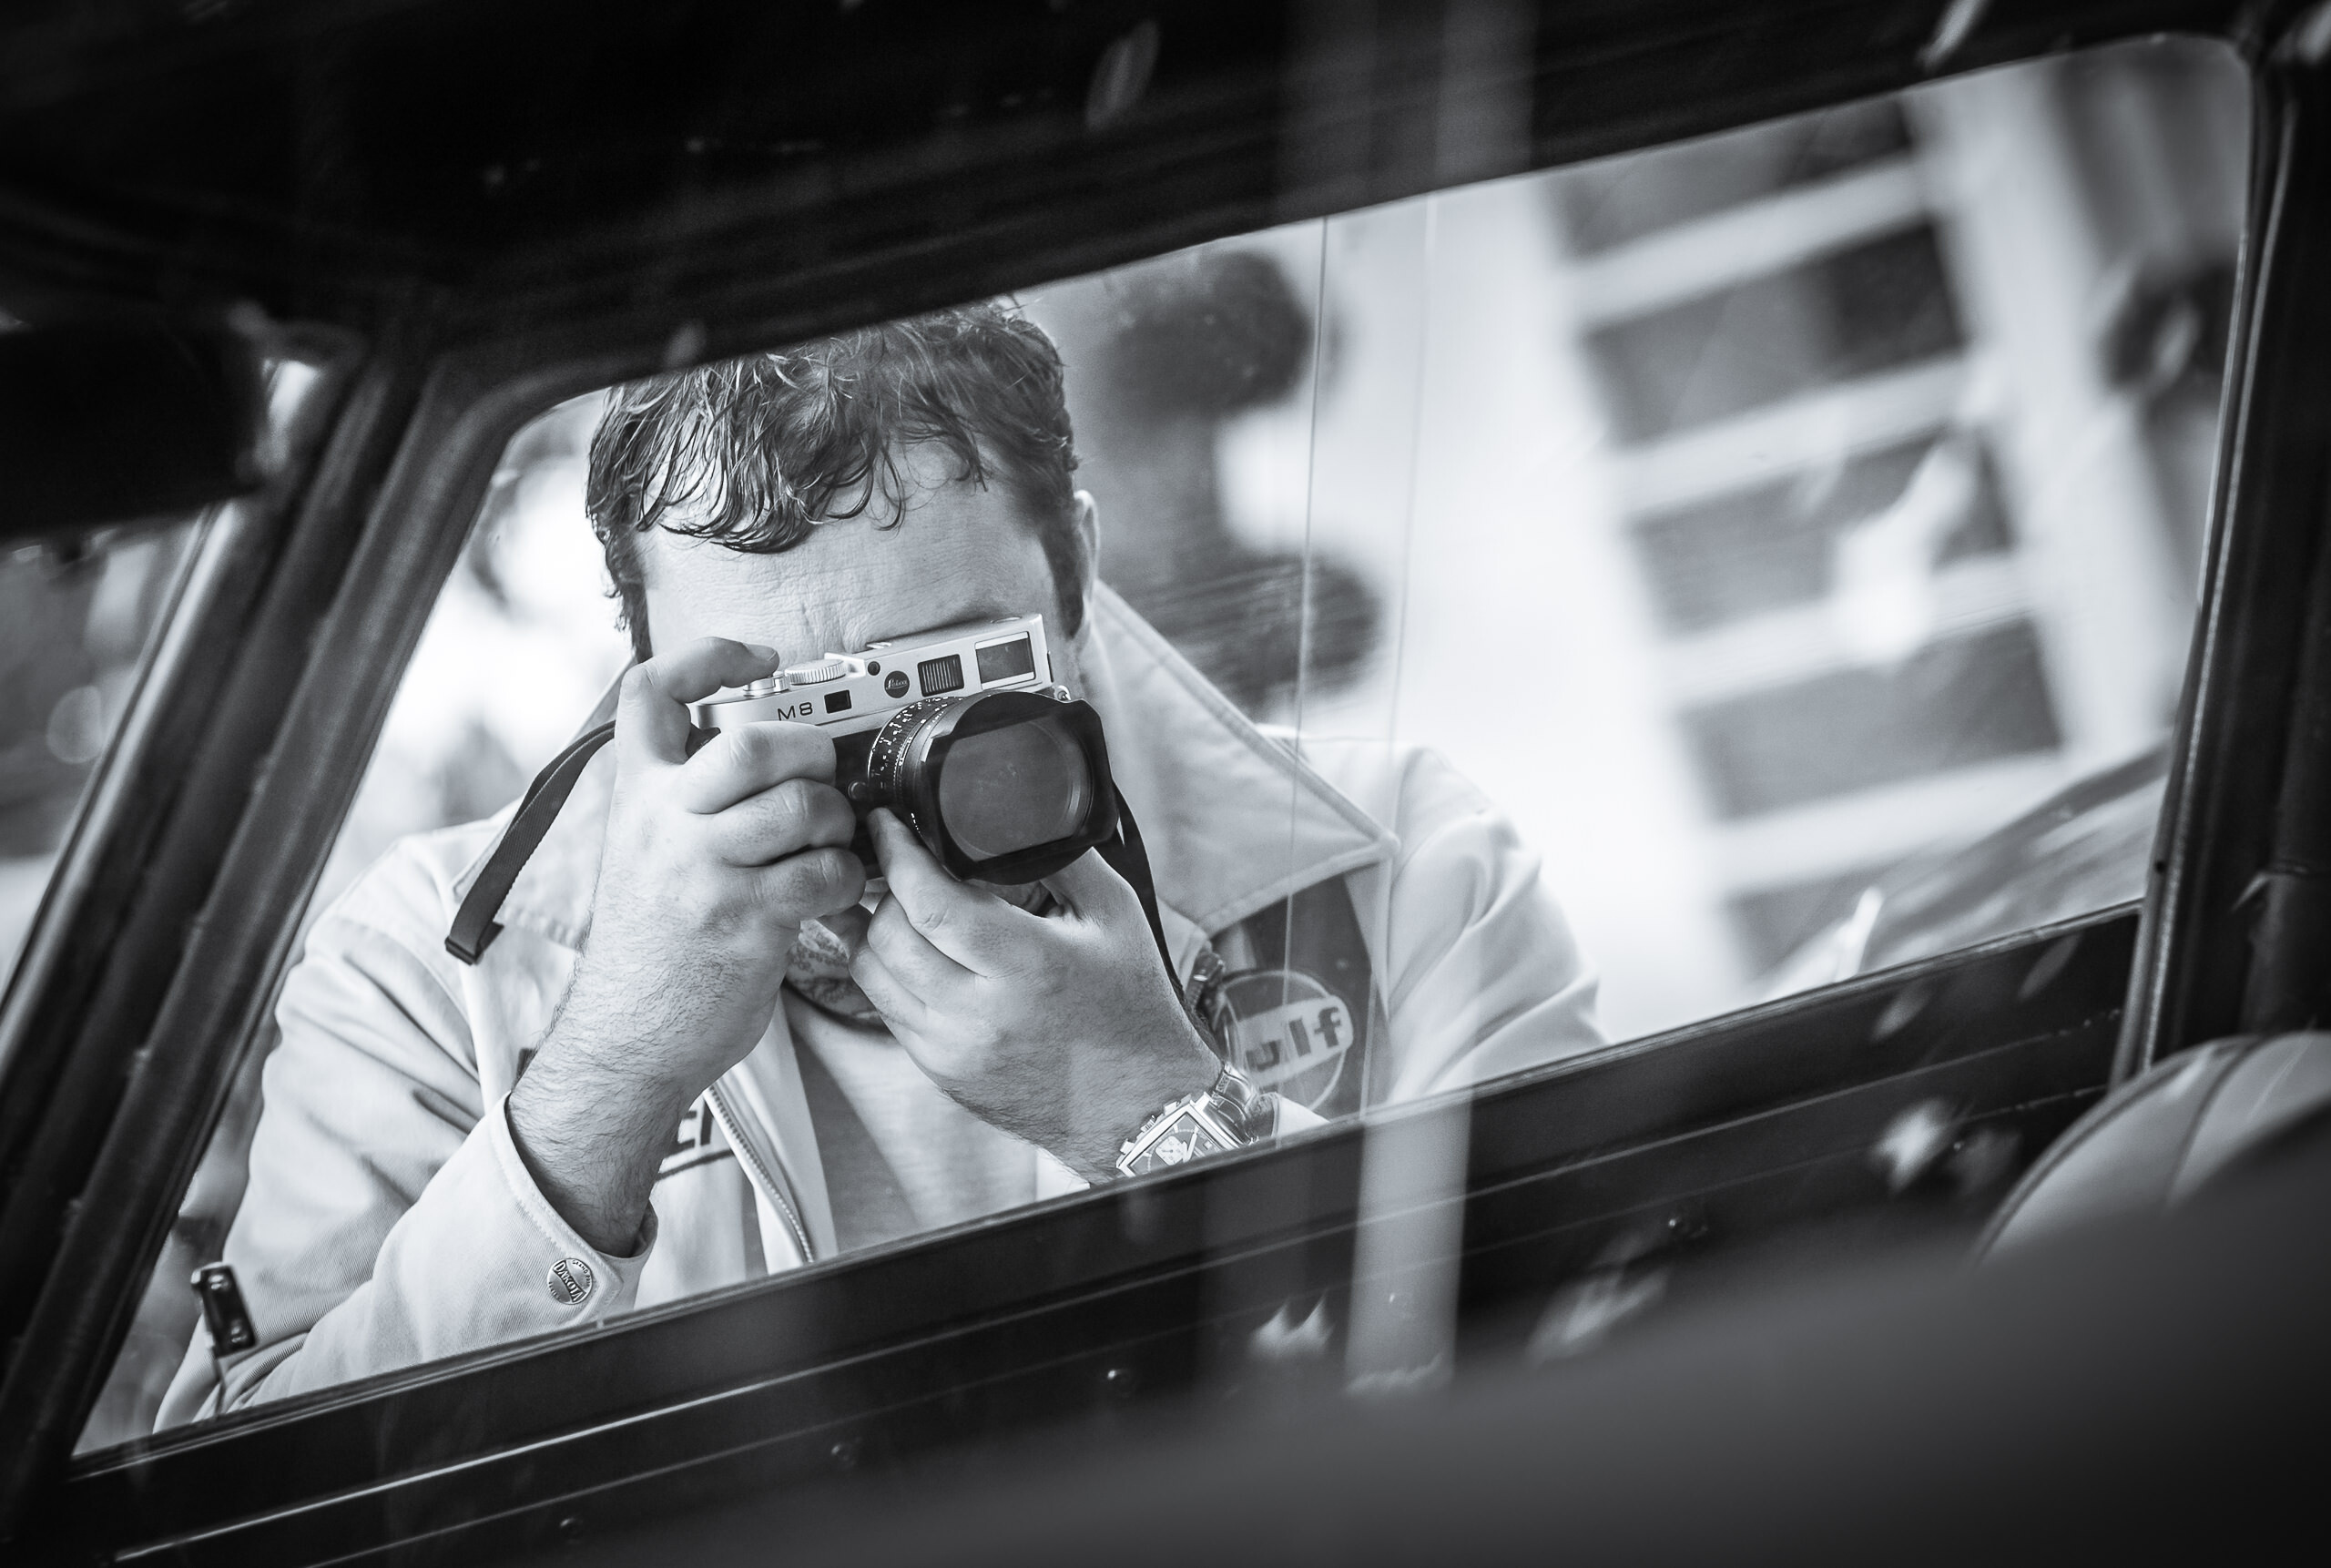 Wayfinder Workshop 21Mm Summilux Goodwood Revival M8 Window By Brett Leica Photographer